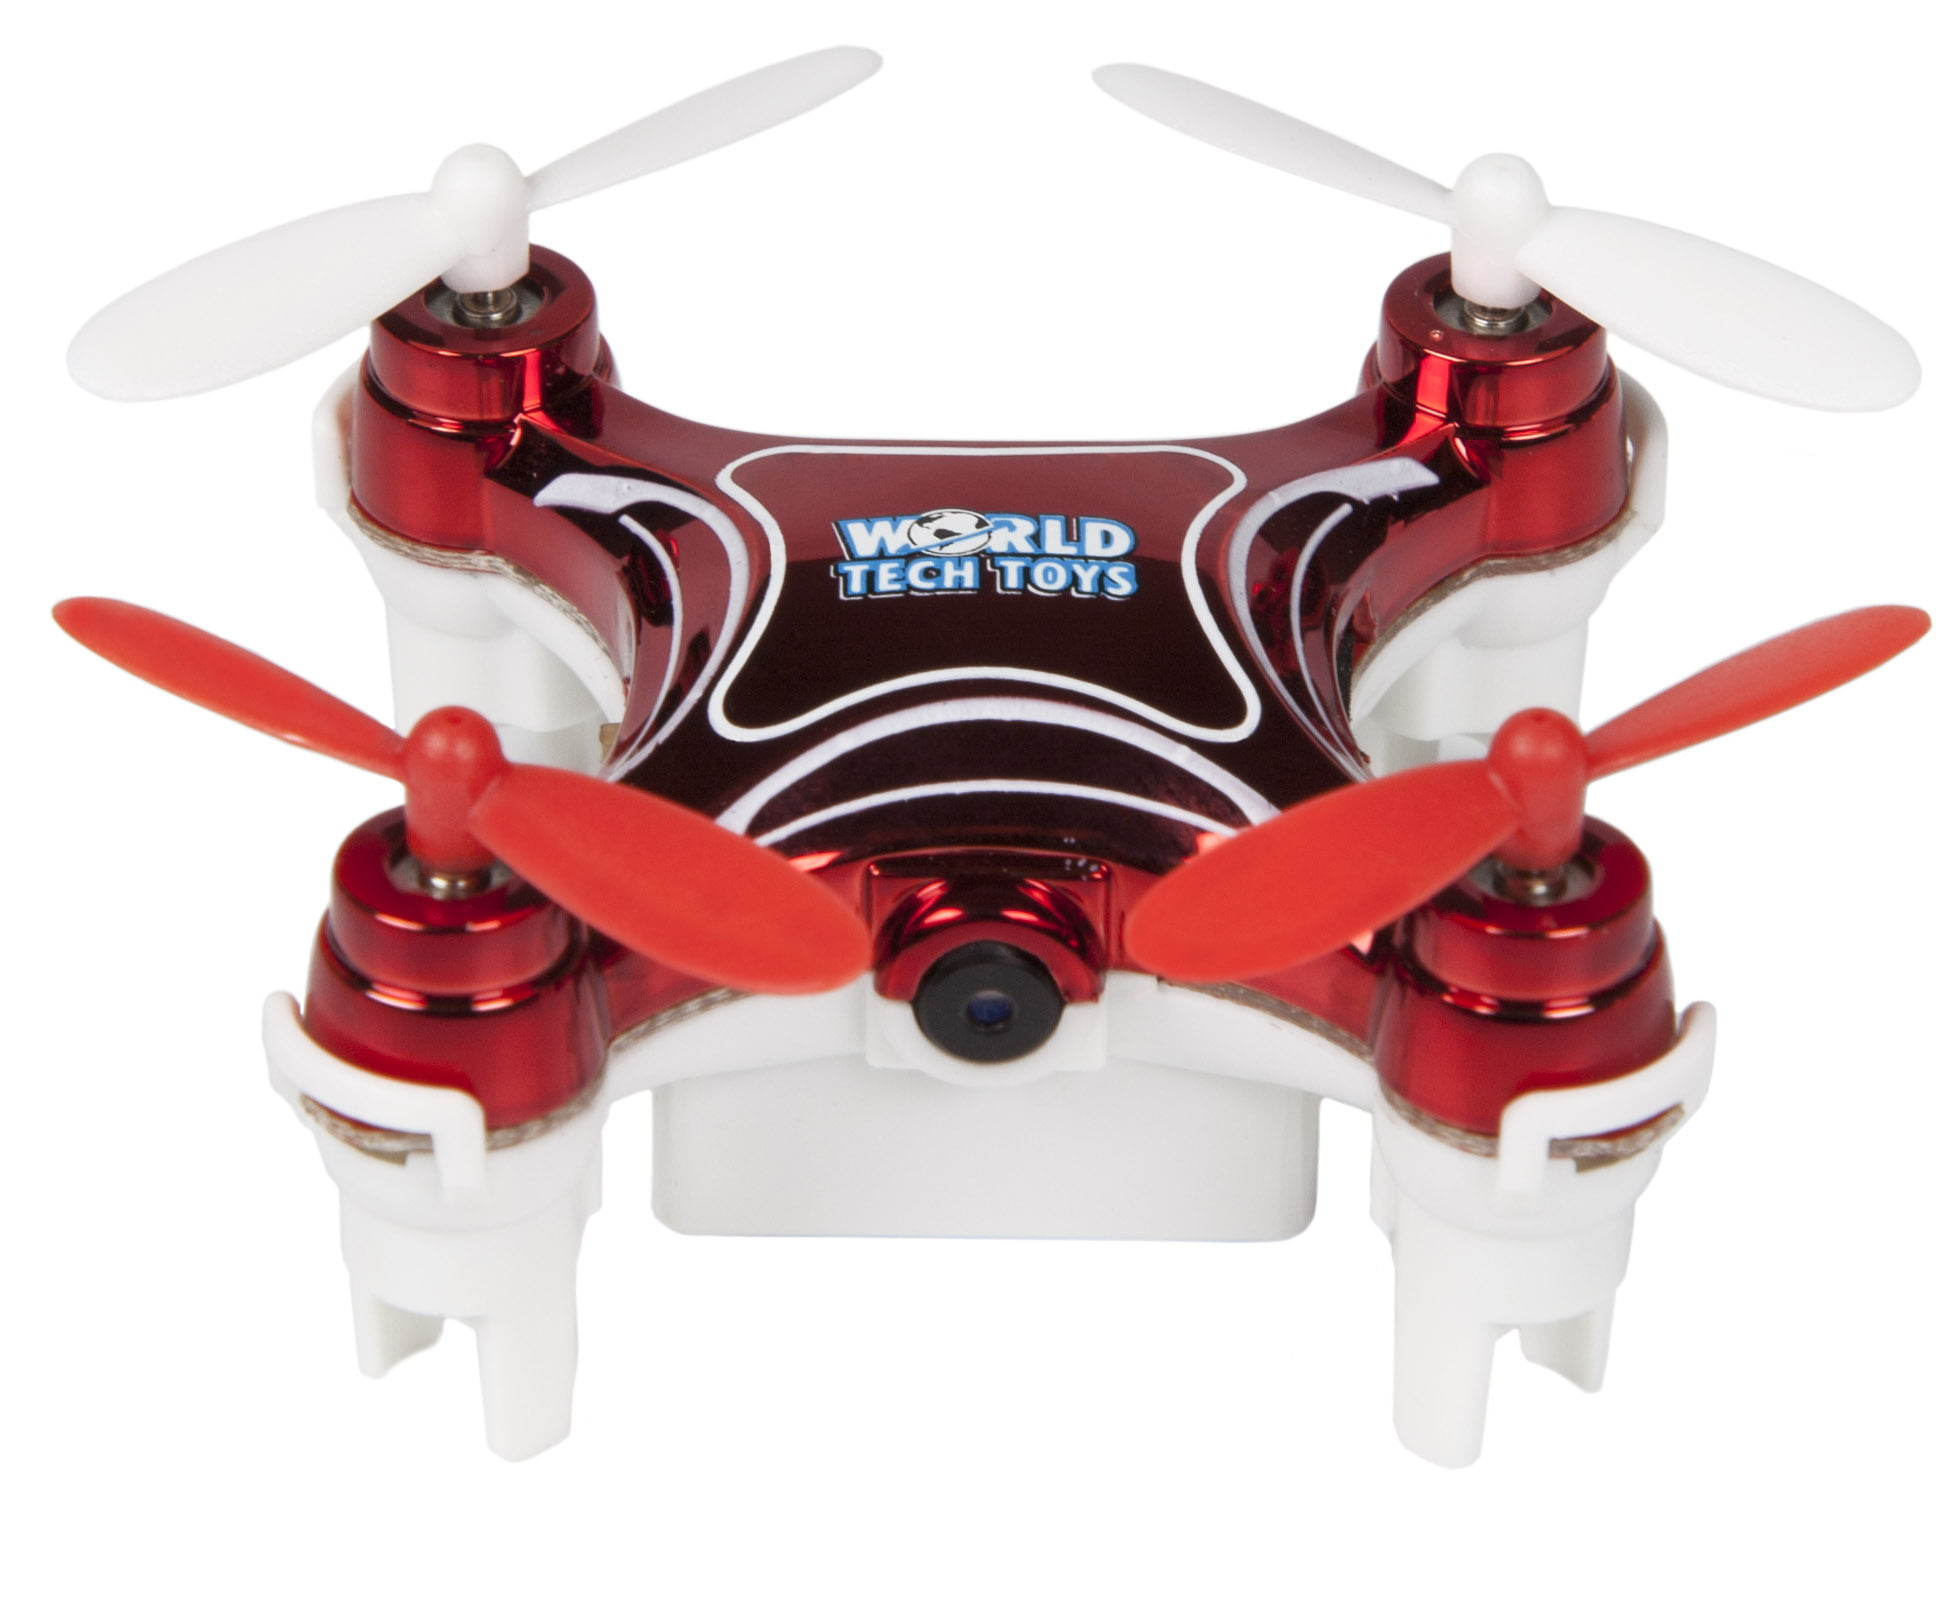 Nemo 4.5CH 2.4GHz Camera RC Spy Drone